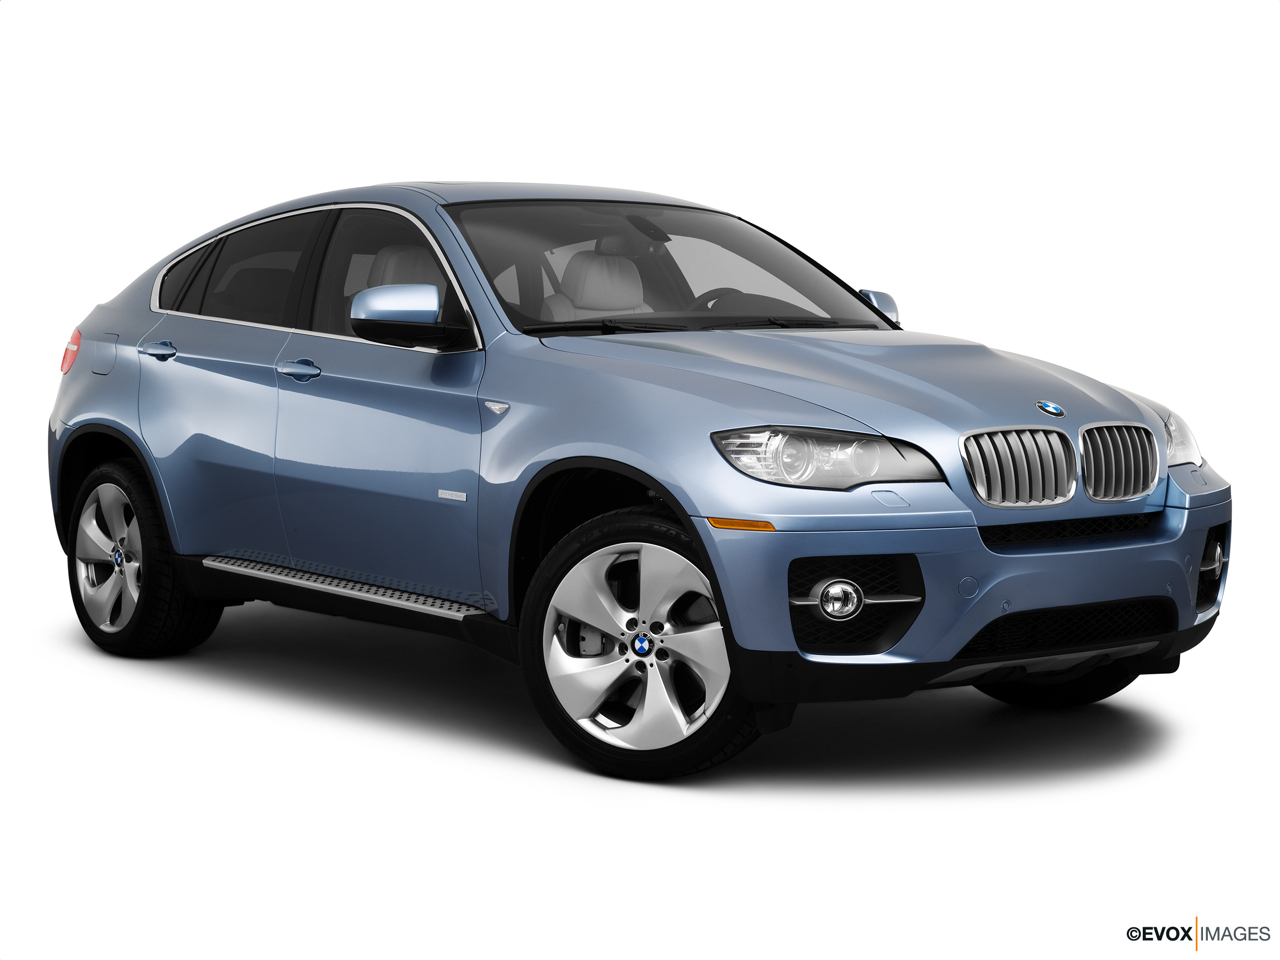 2010 BMW X6 Hybrid Base Front passenger 3/4 w/ wheels turned.